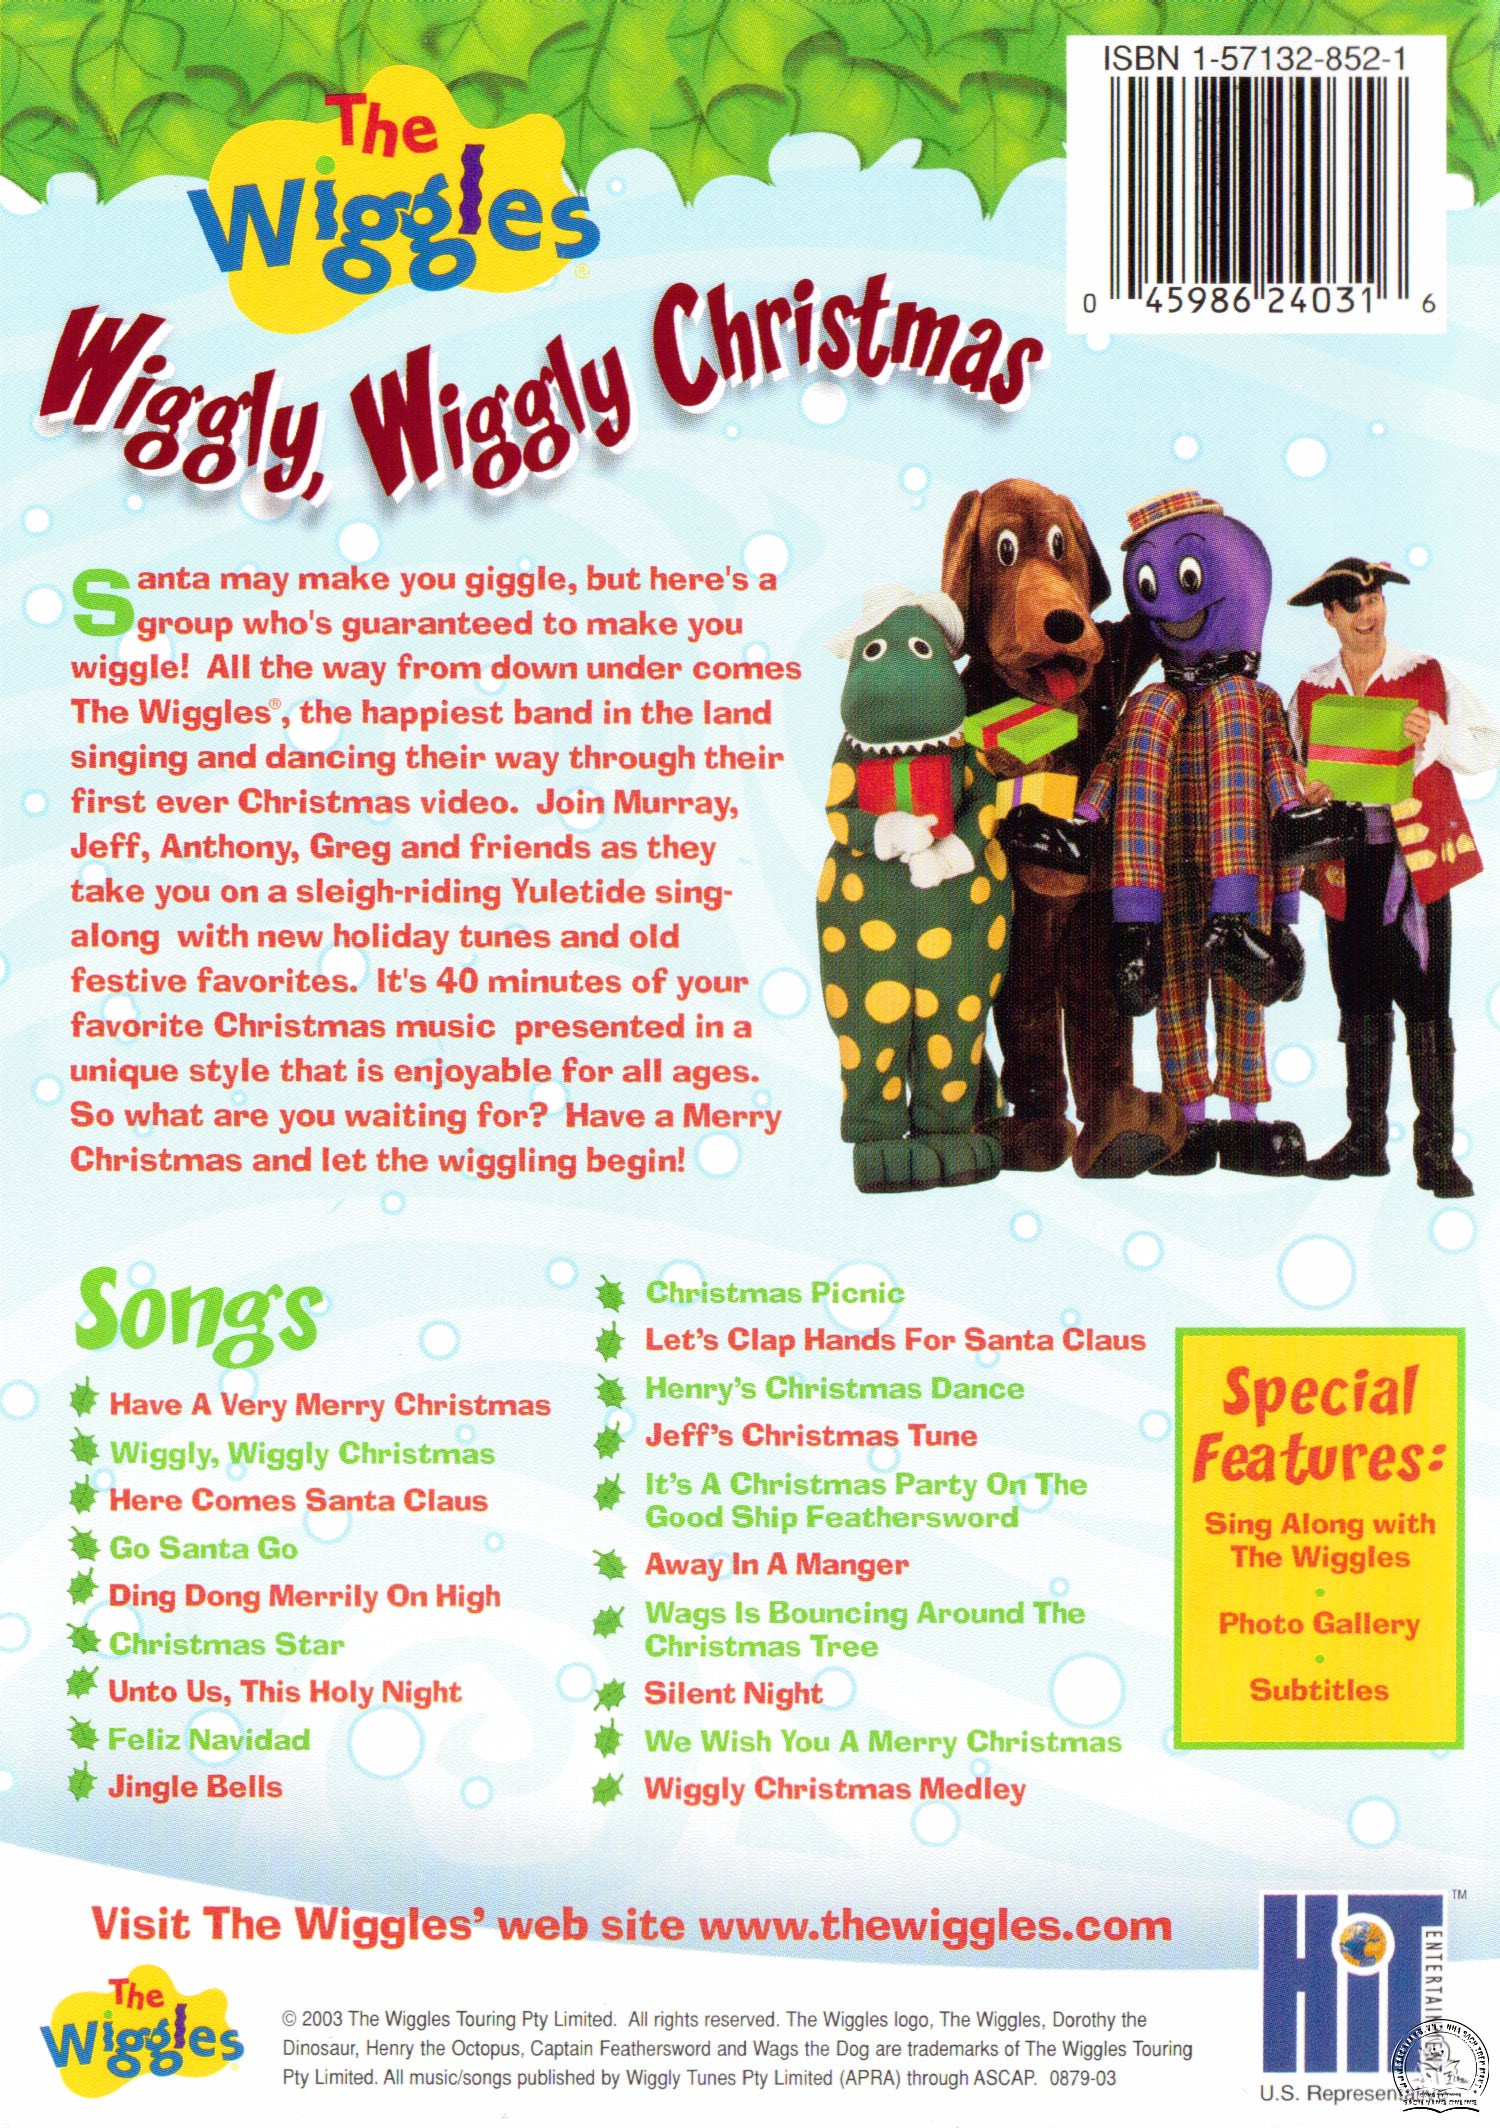 The Wiggles - Wiggly Wiggly Christmas back